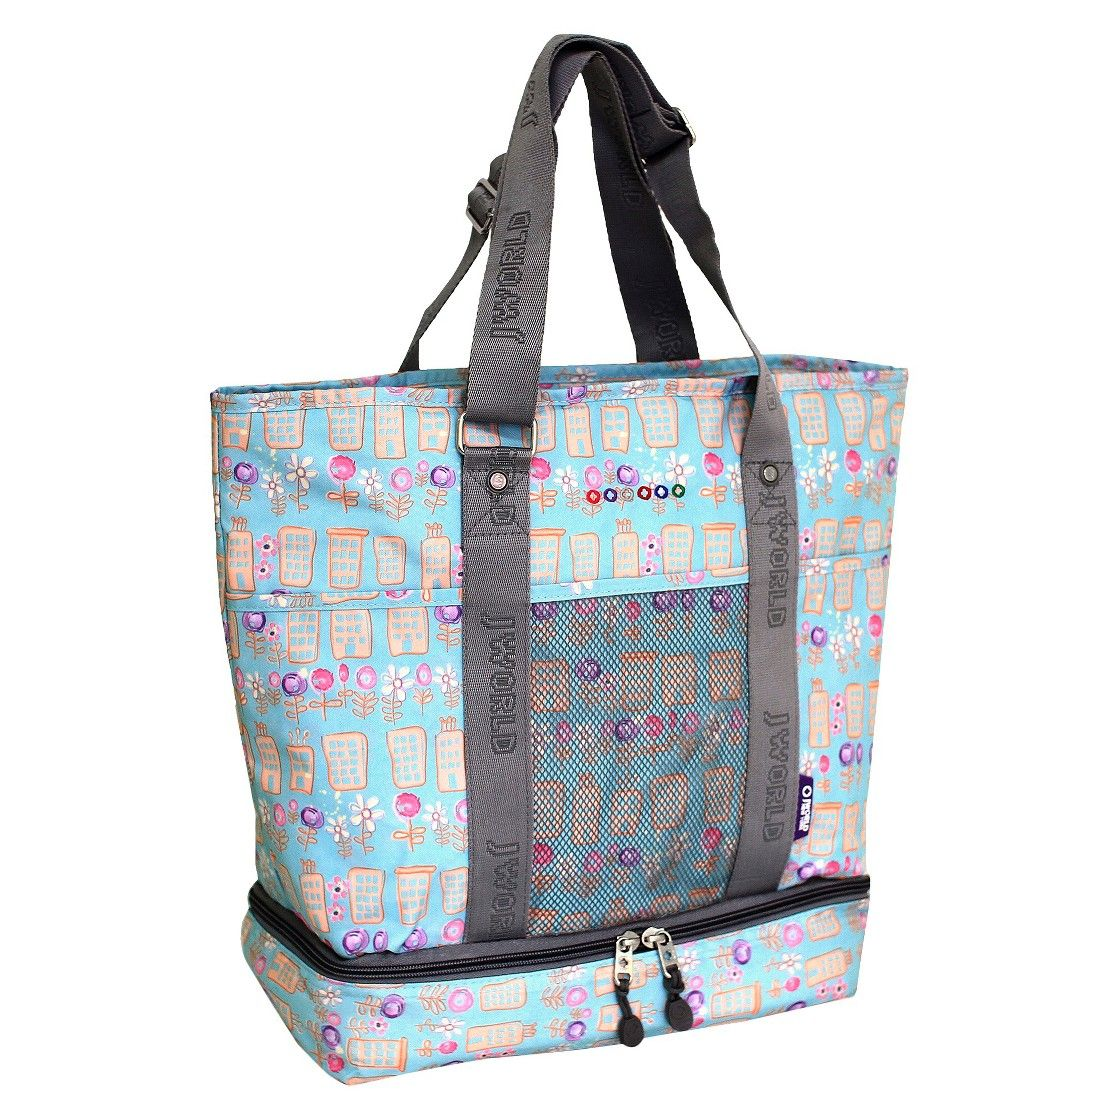 J World Elaine Tote Bag with Insulated Lunch Compartment - Urban